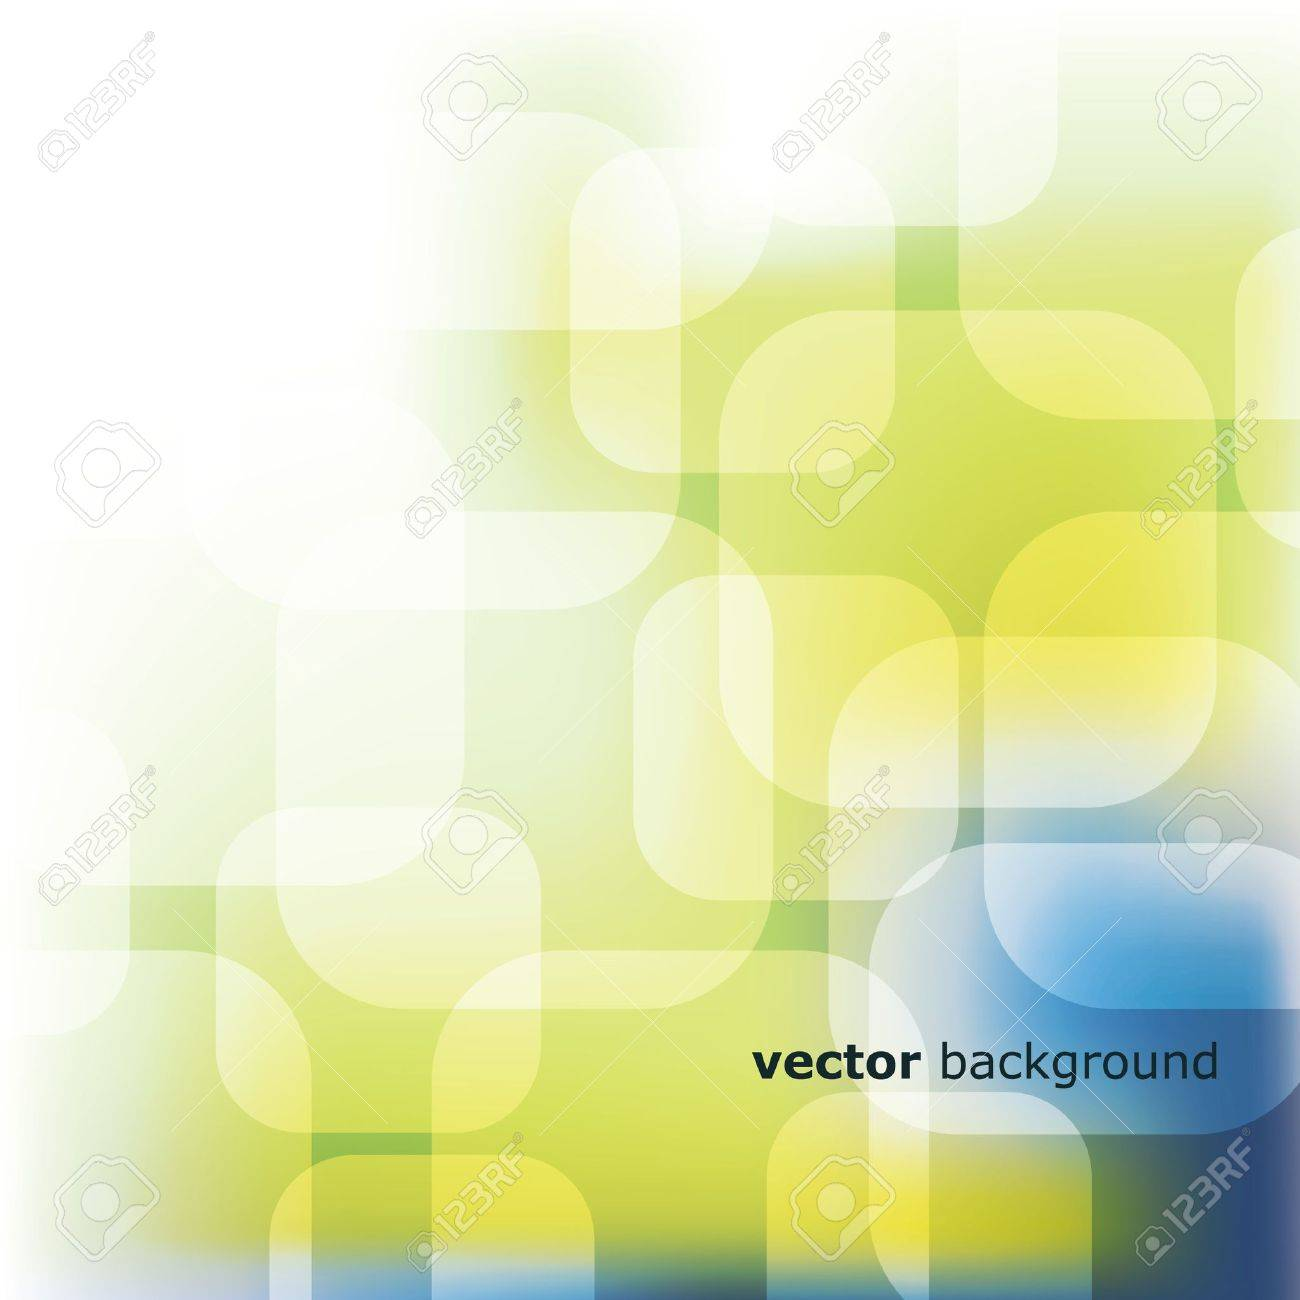 Abstract Background Vector Stock Vector - 13133549